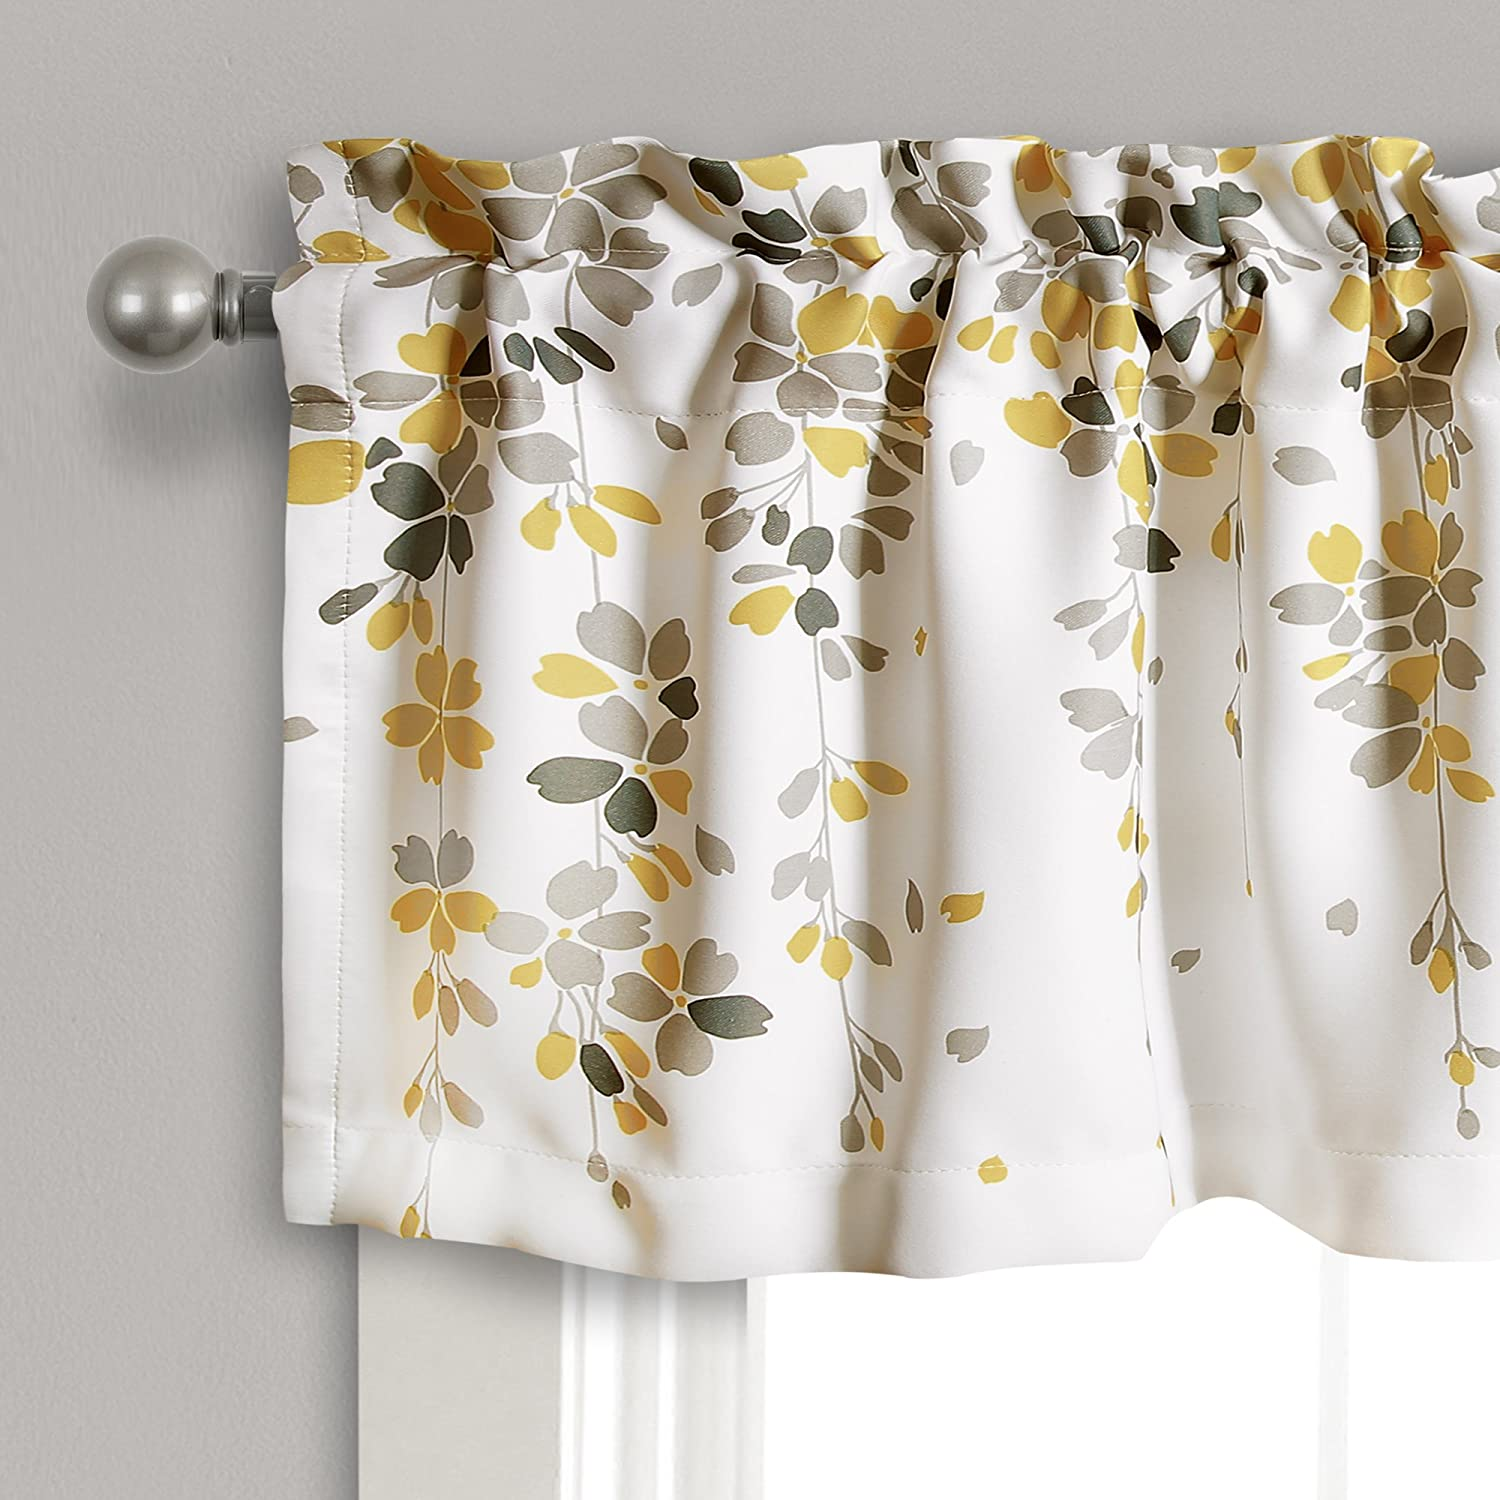 Yellow /& Gray Triangle Home Fashions 16T002773 Lush Decor Weeping Flowers Yellow and Gray Valance Curtain for Windows 18 x 52